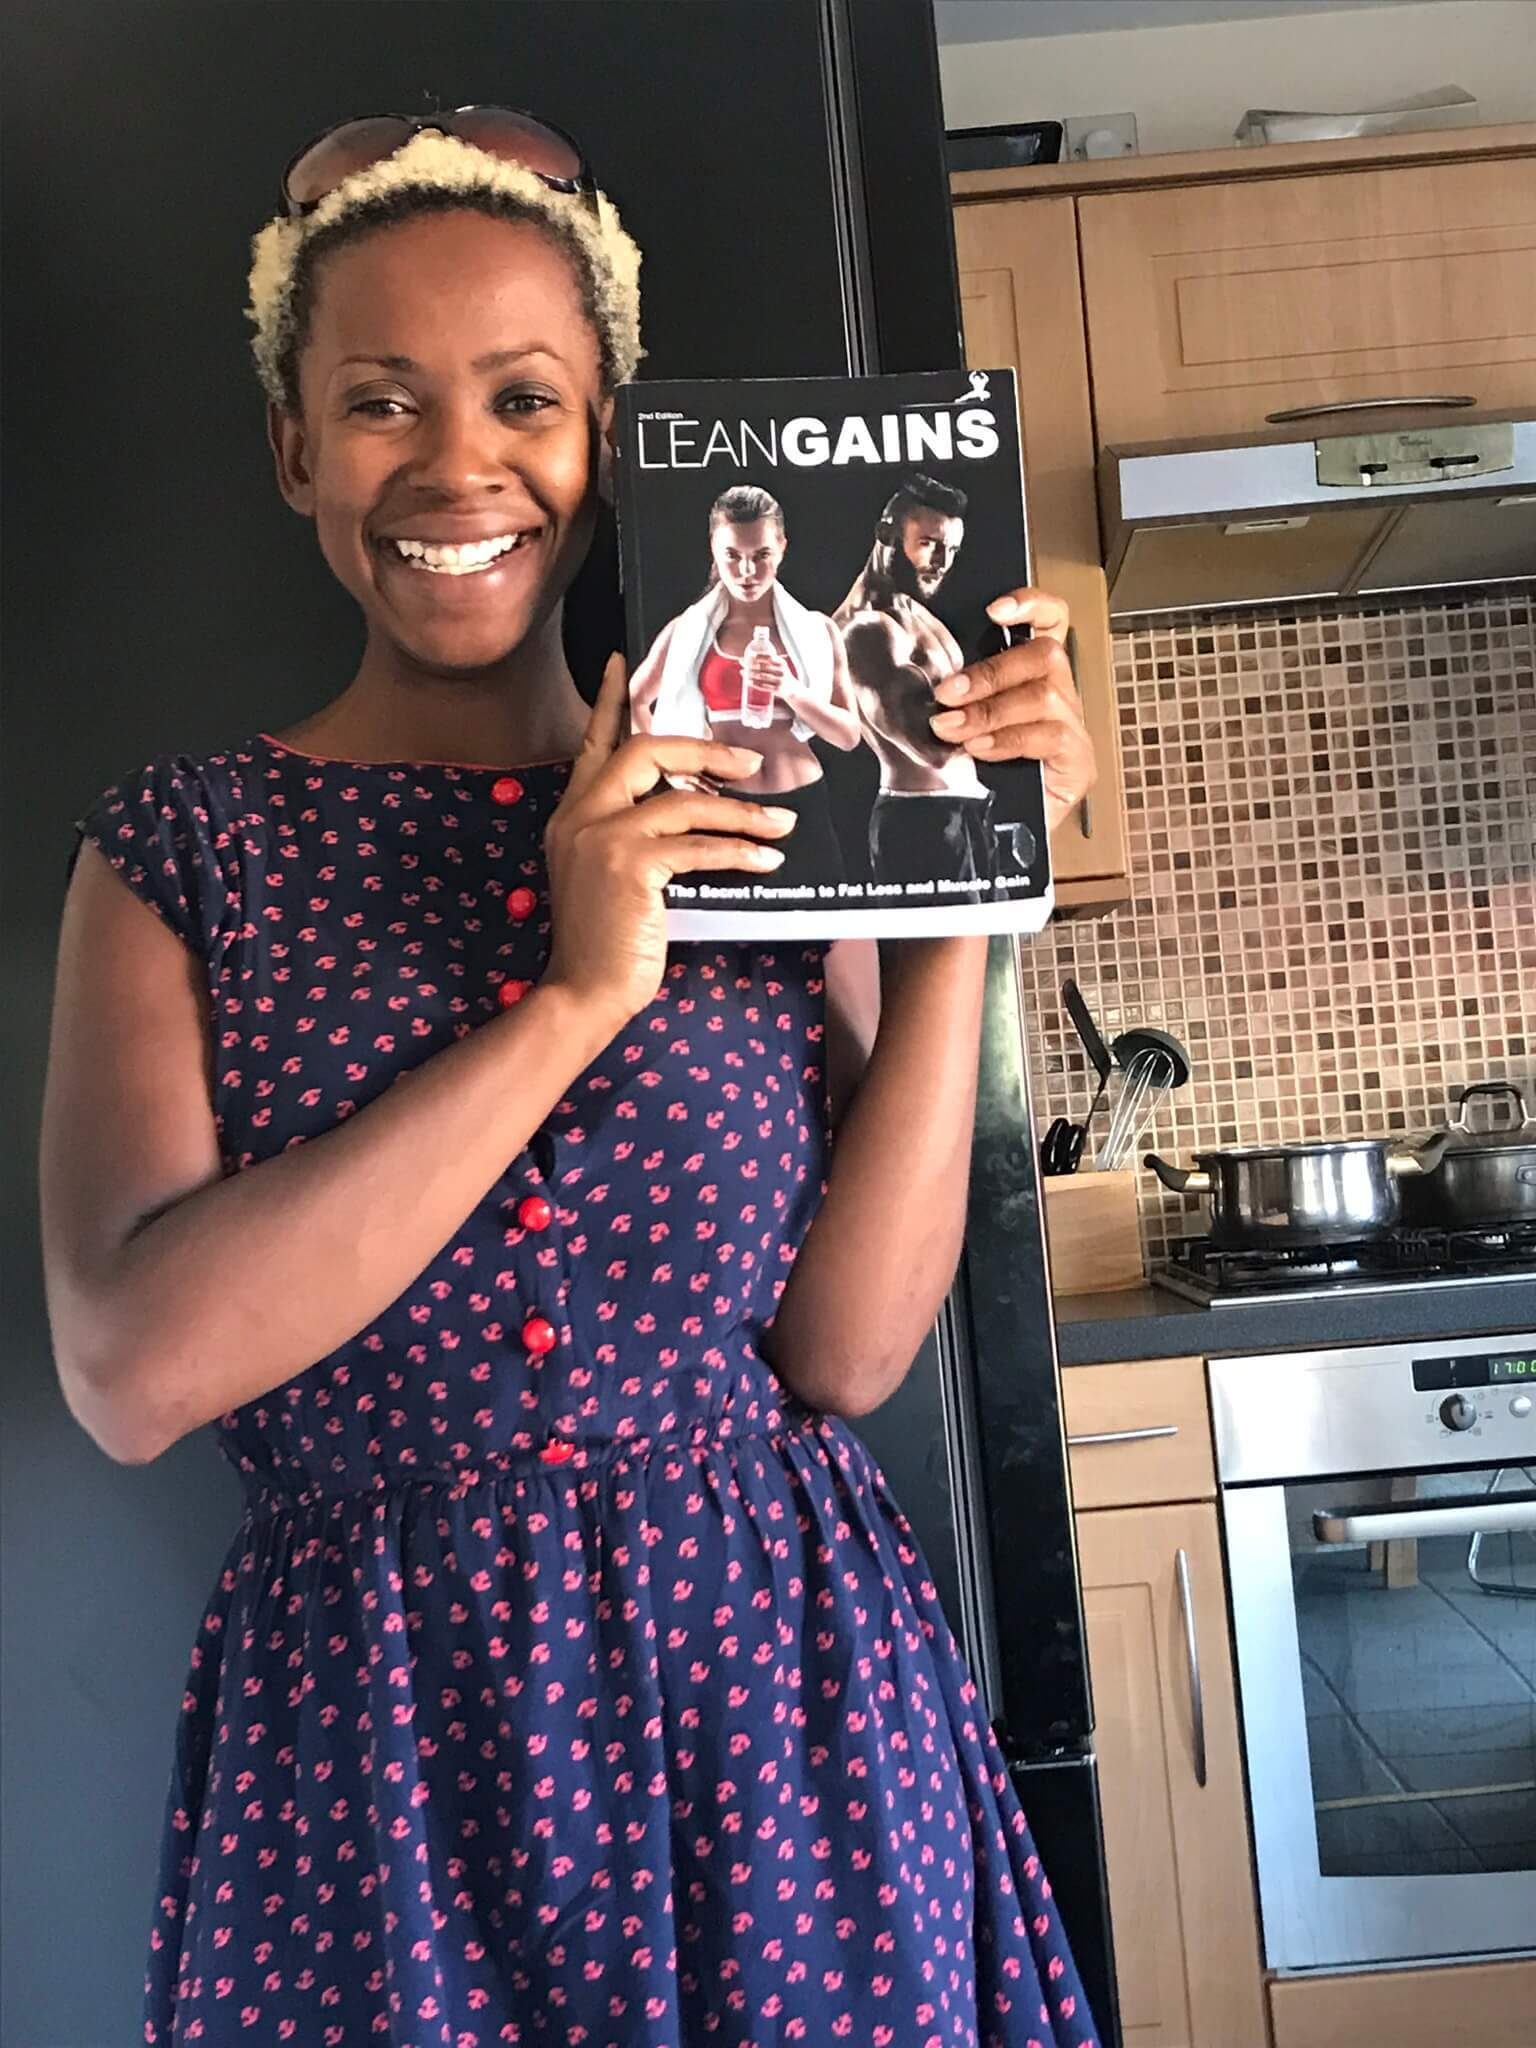 author jocelyyn holding lean gains book